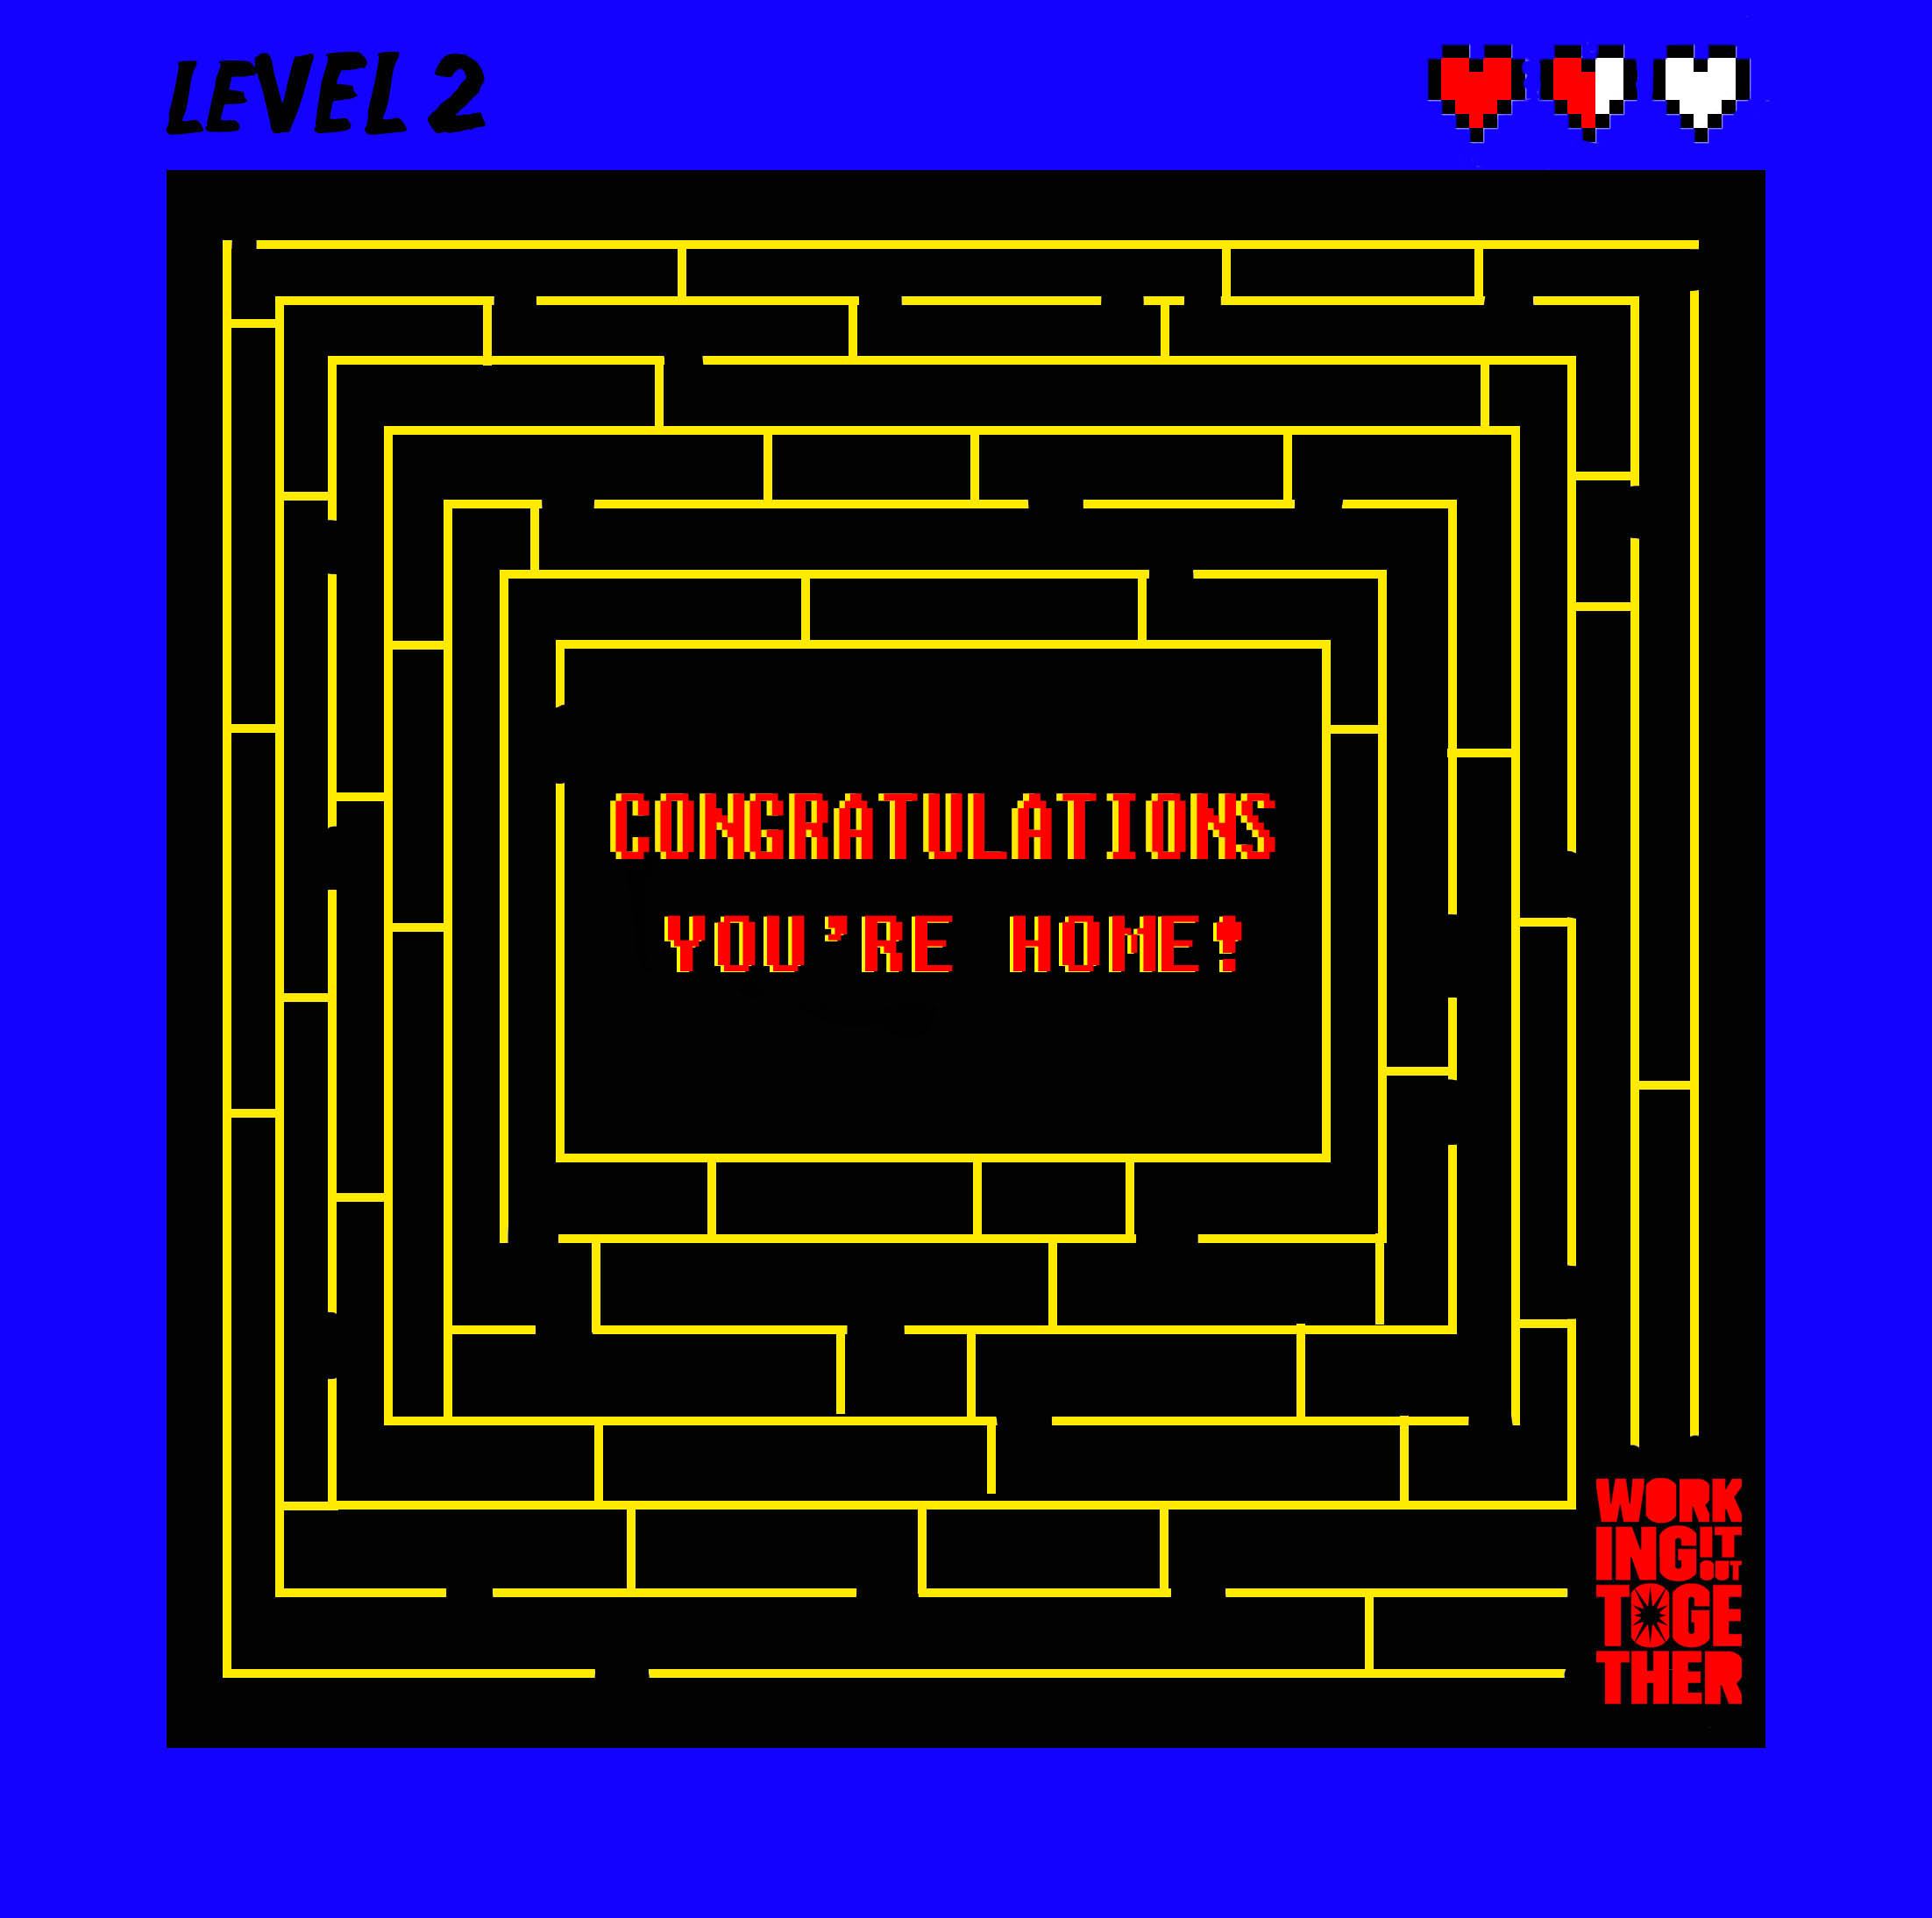 YOU'RE HOME